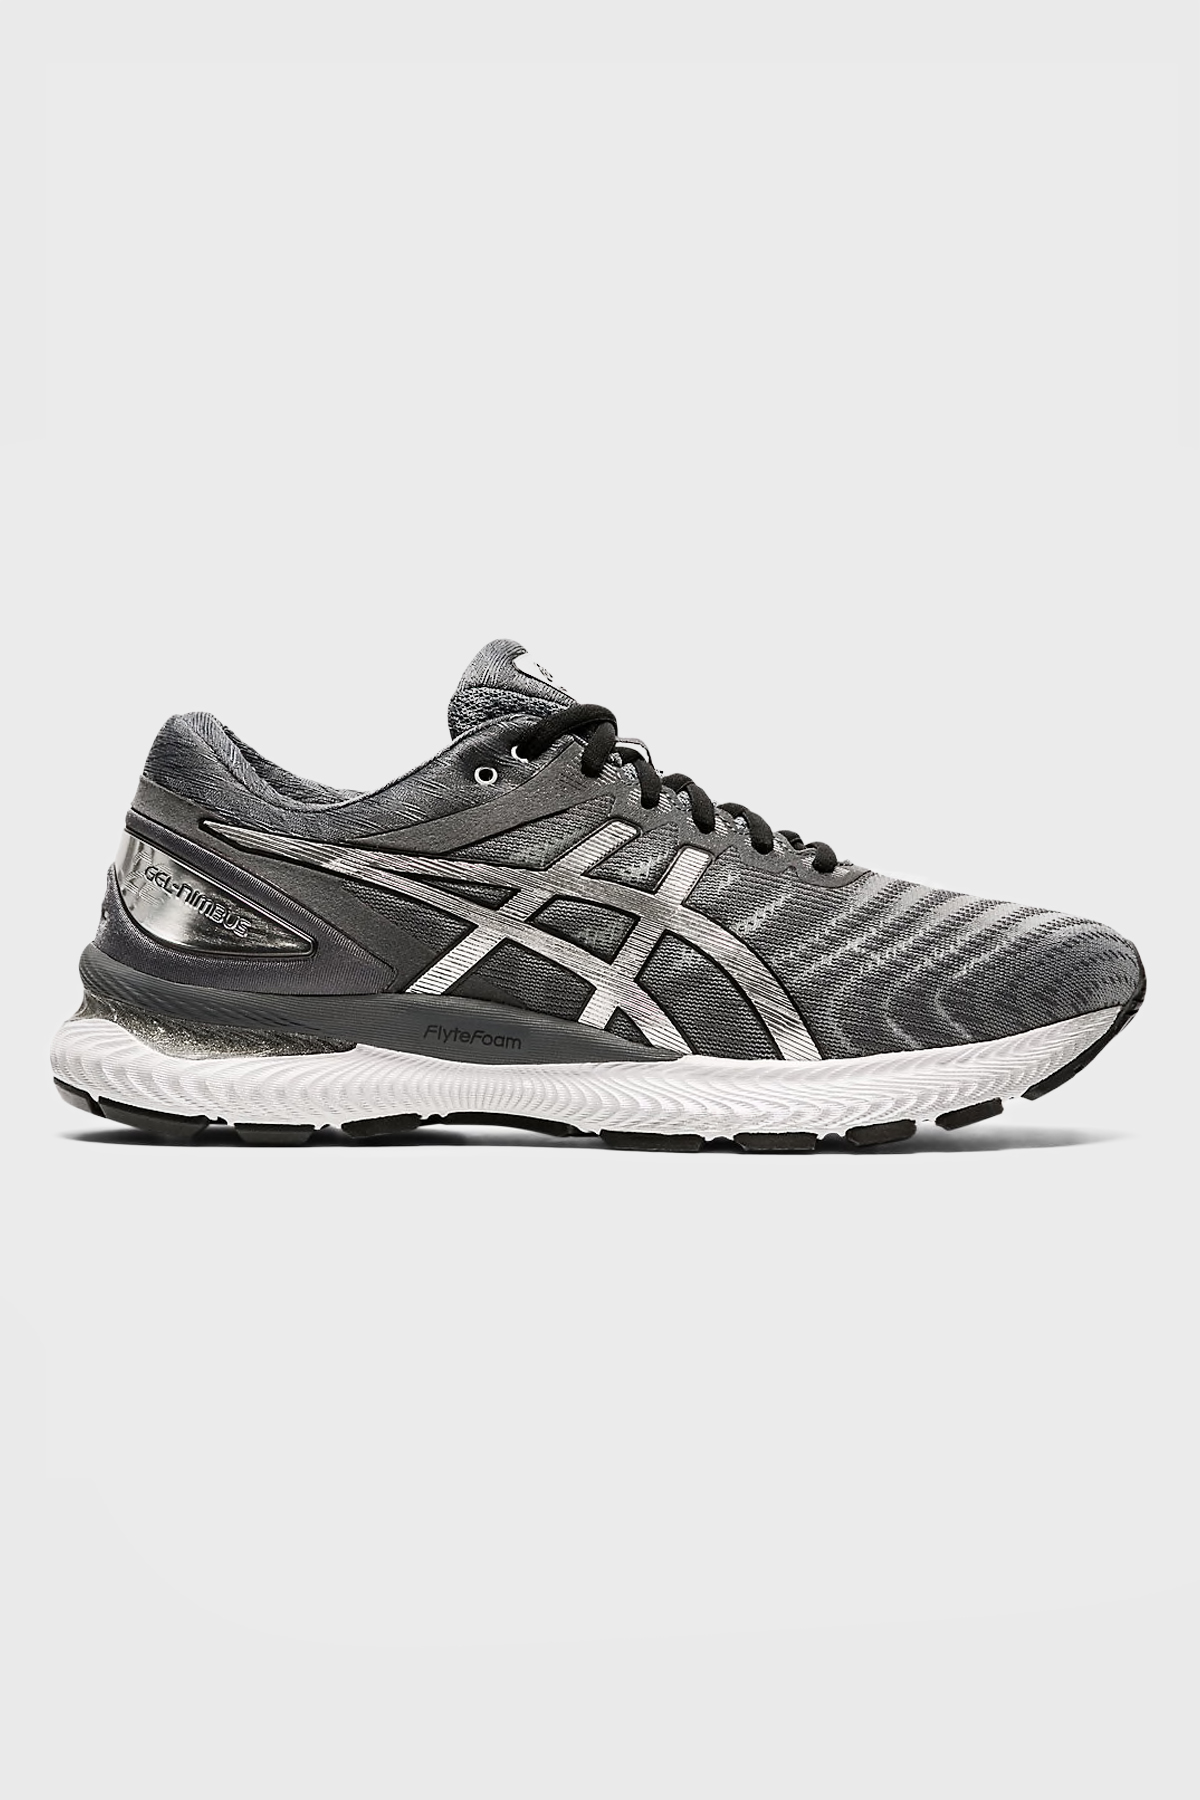 Asics - Gel Nimbus 22 Platinium - Carrier Grey Pure silver